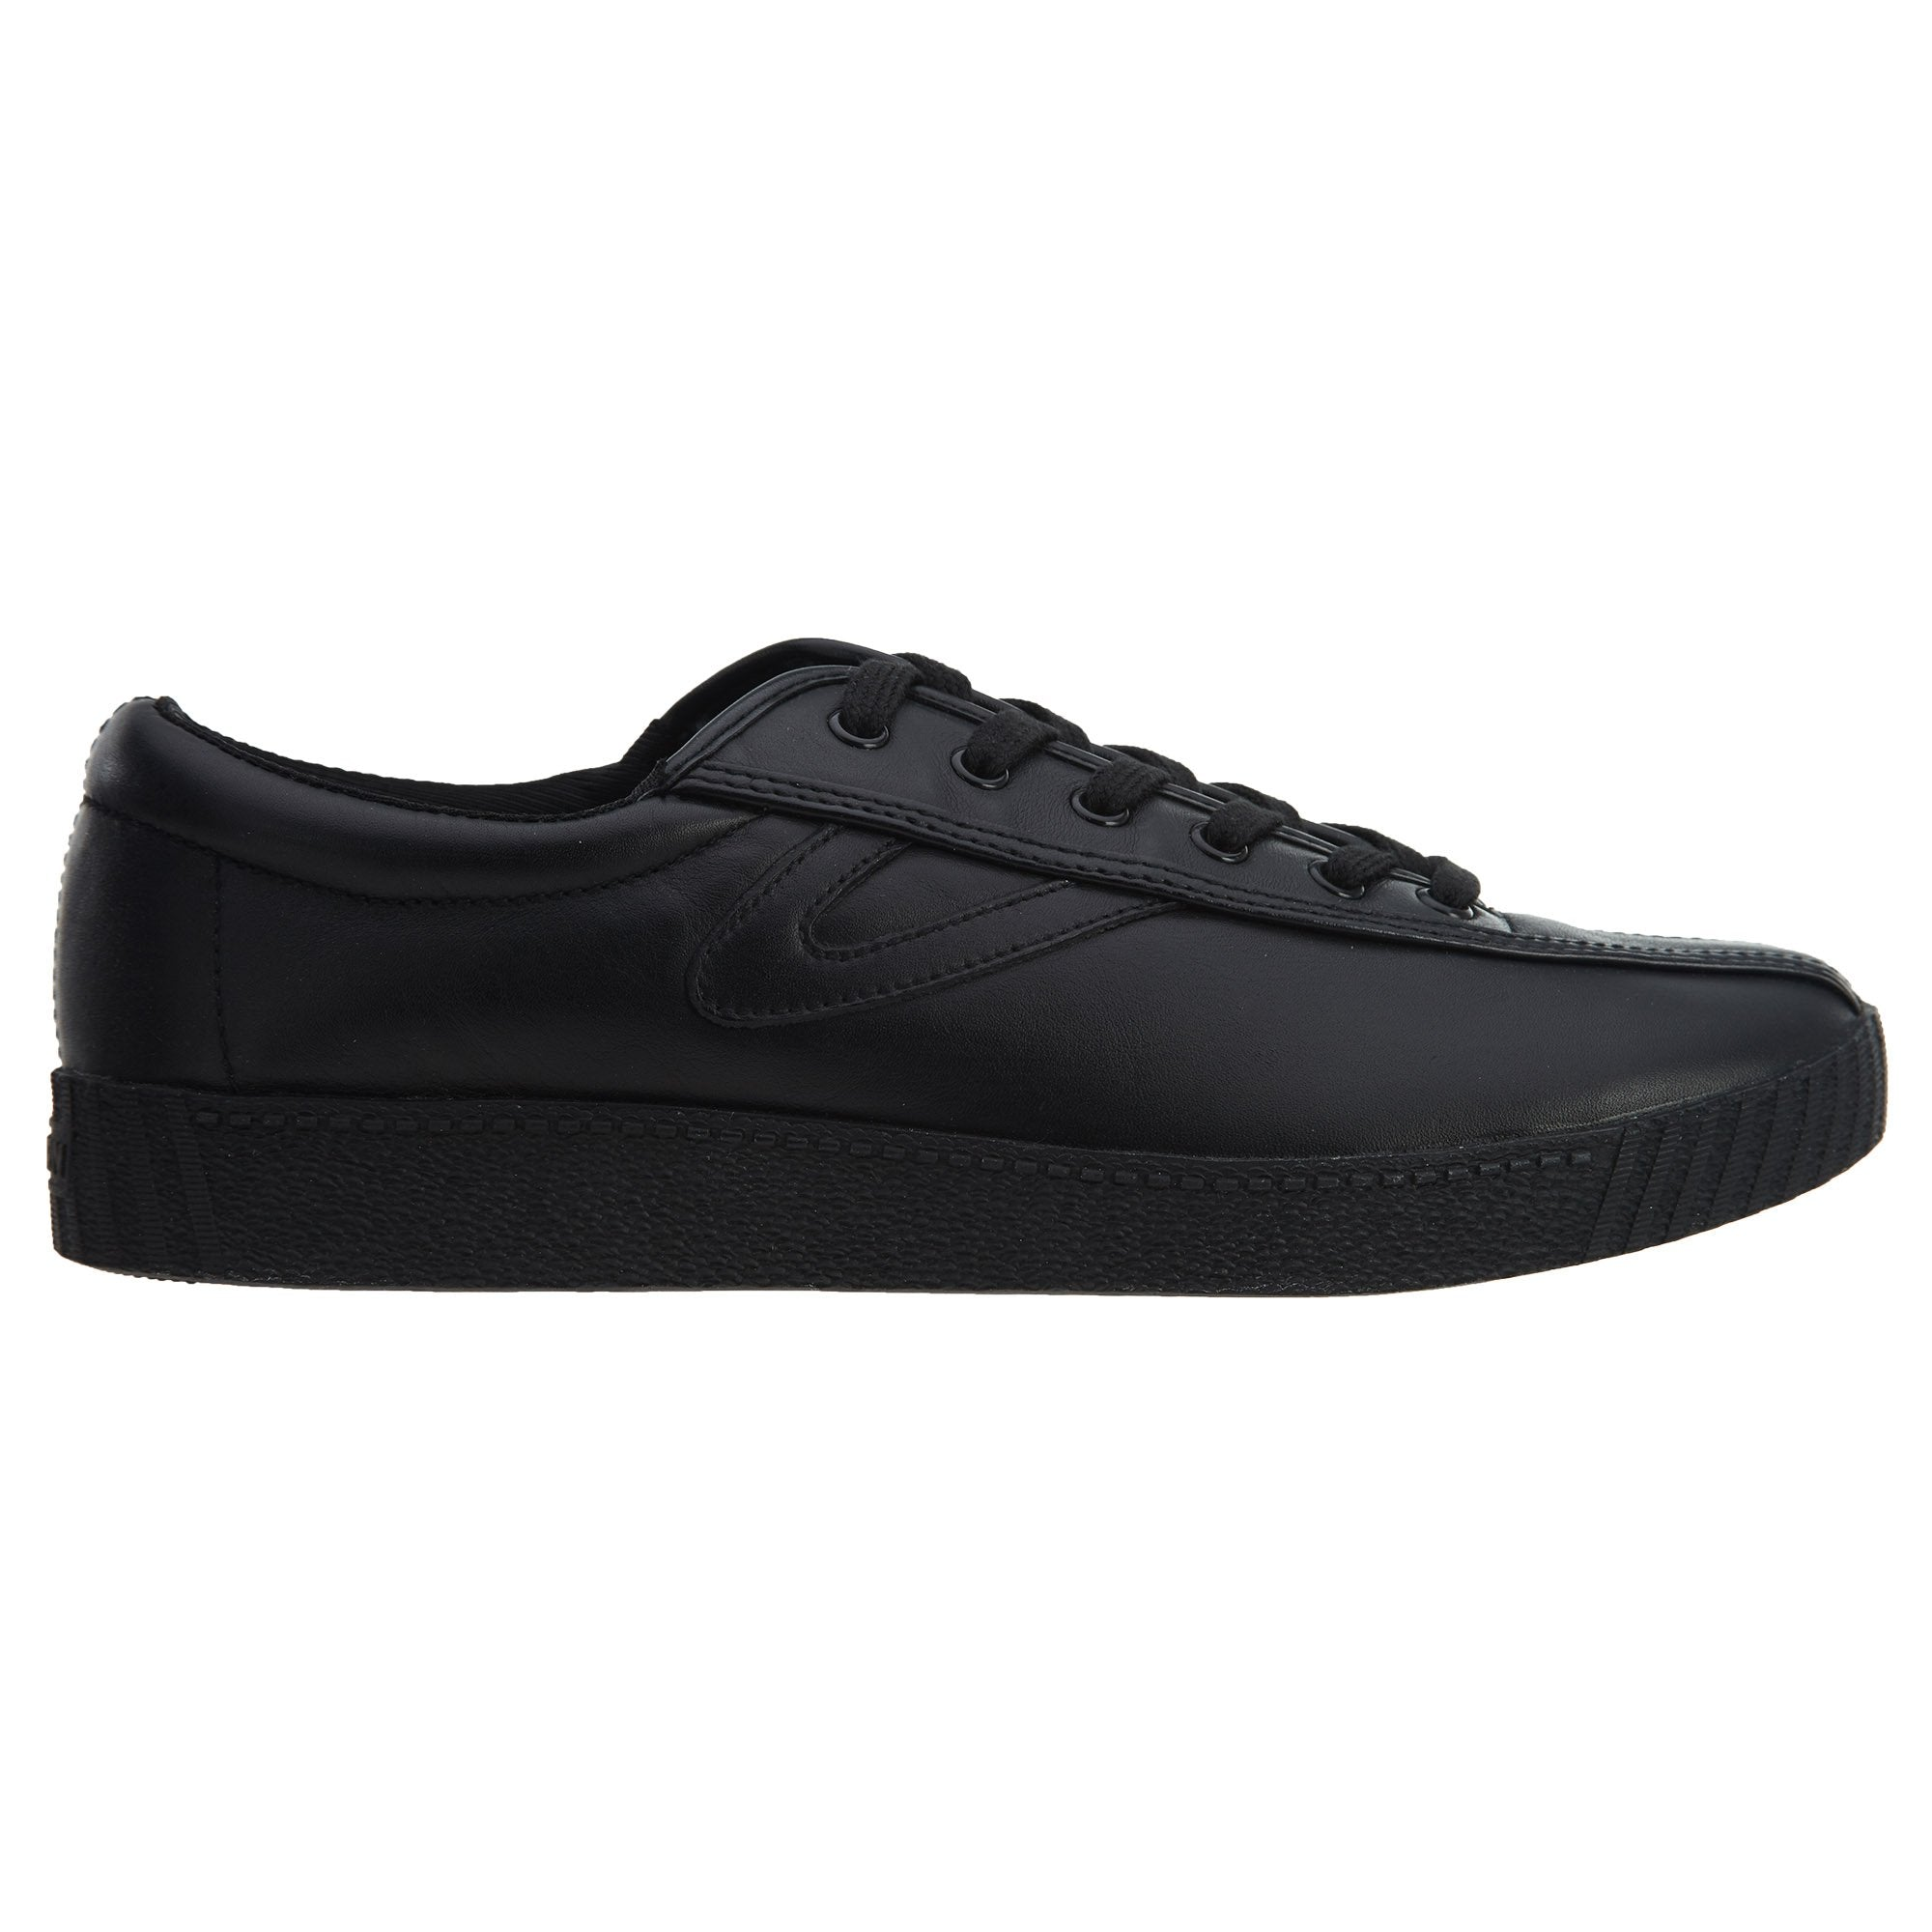 Tretorn Leather Shoes Womens Style